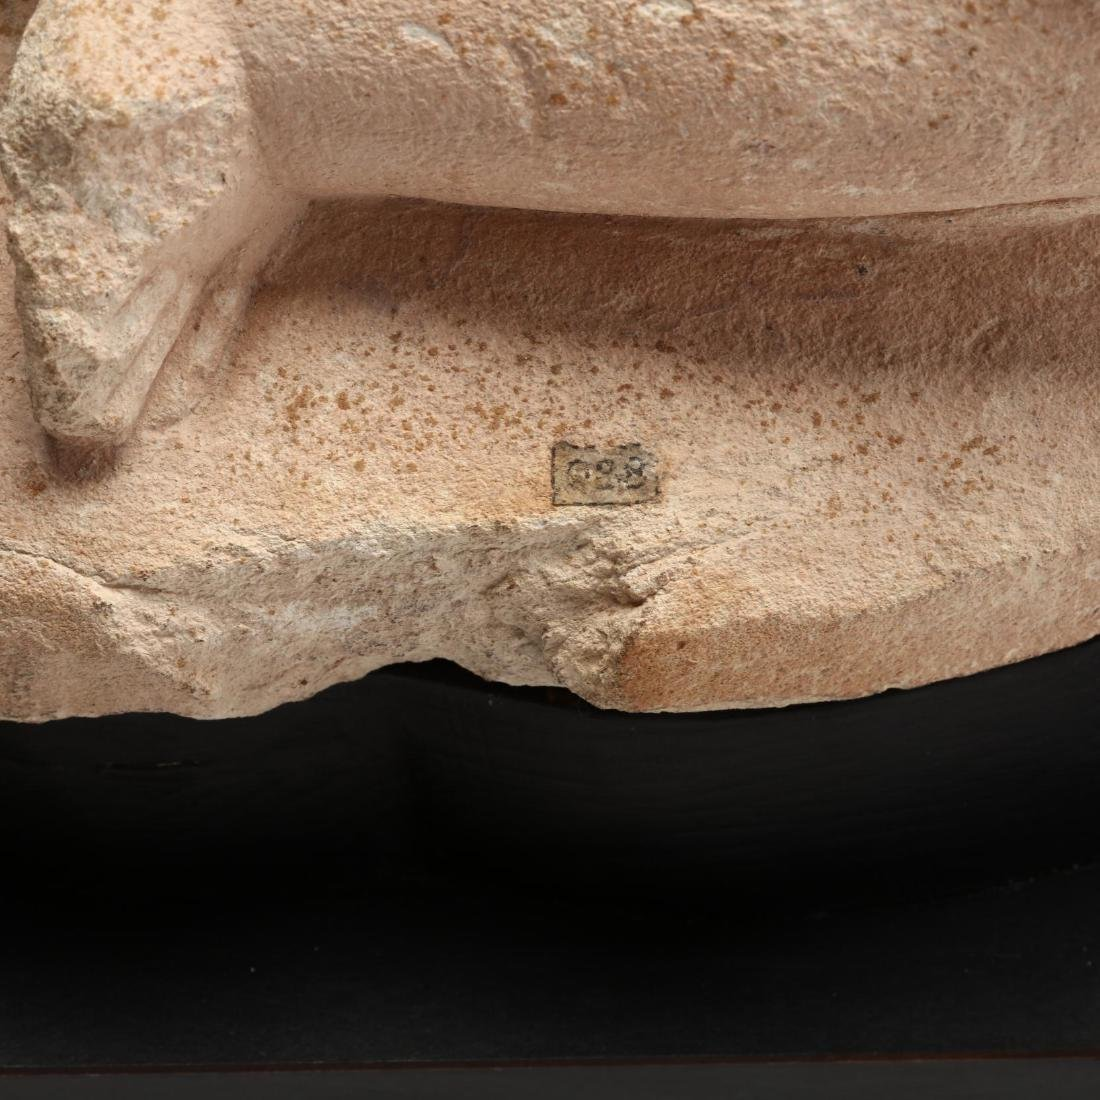 Cypriot Seated Limestone Figure, Ex. Cesnola Collection - 3